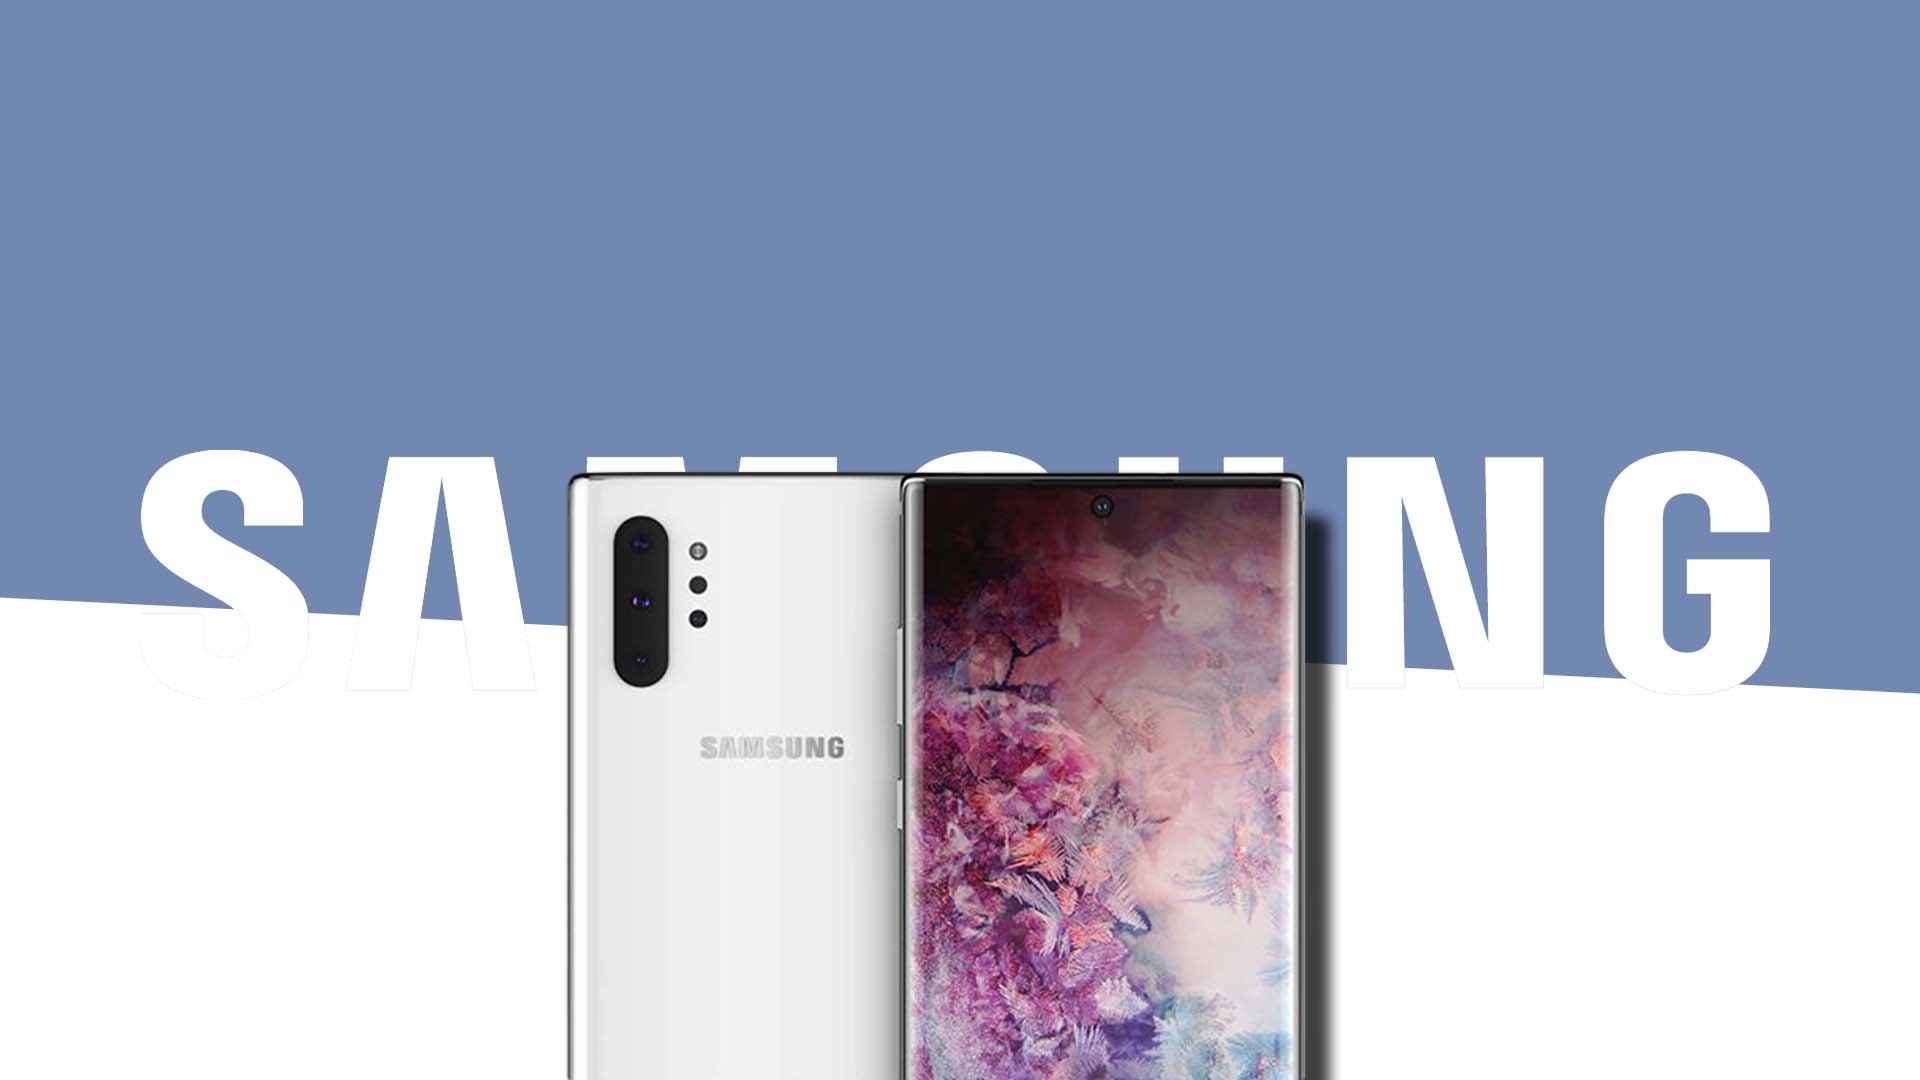 Galaxy Note 10 internal storage options include 1TB model